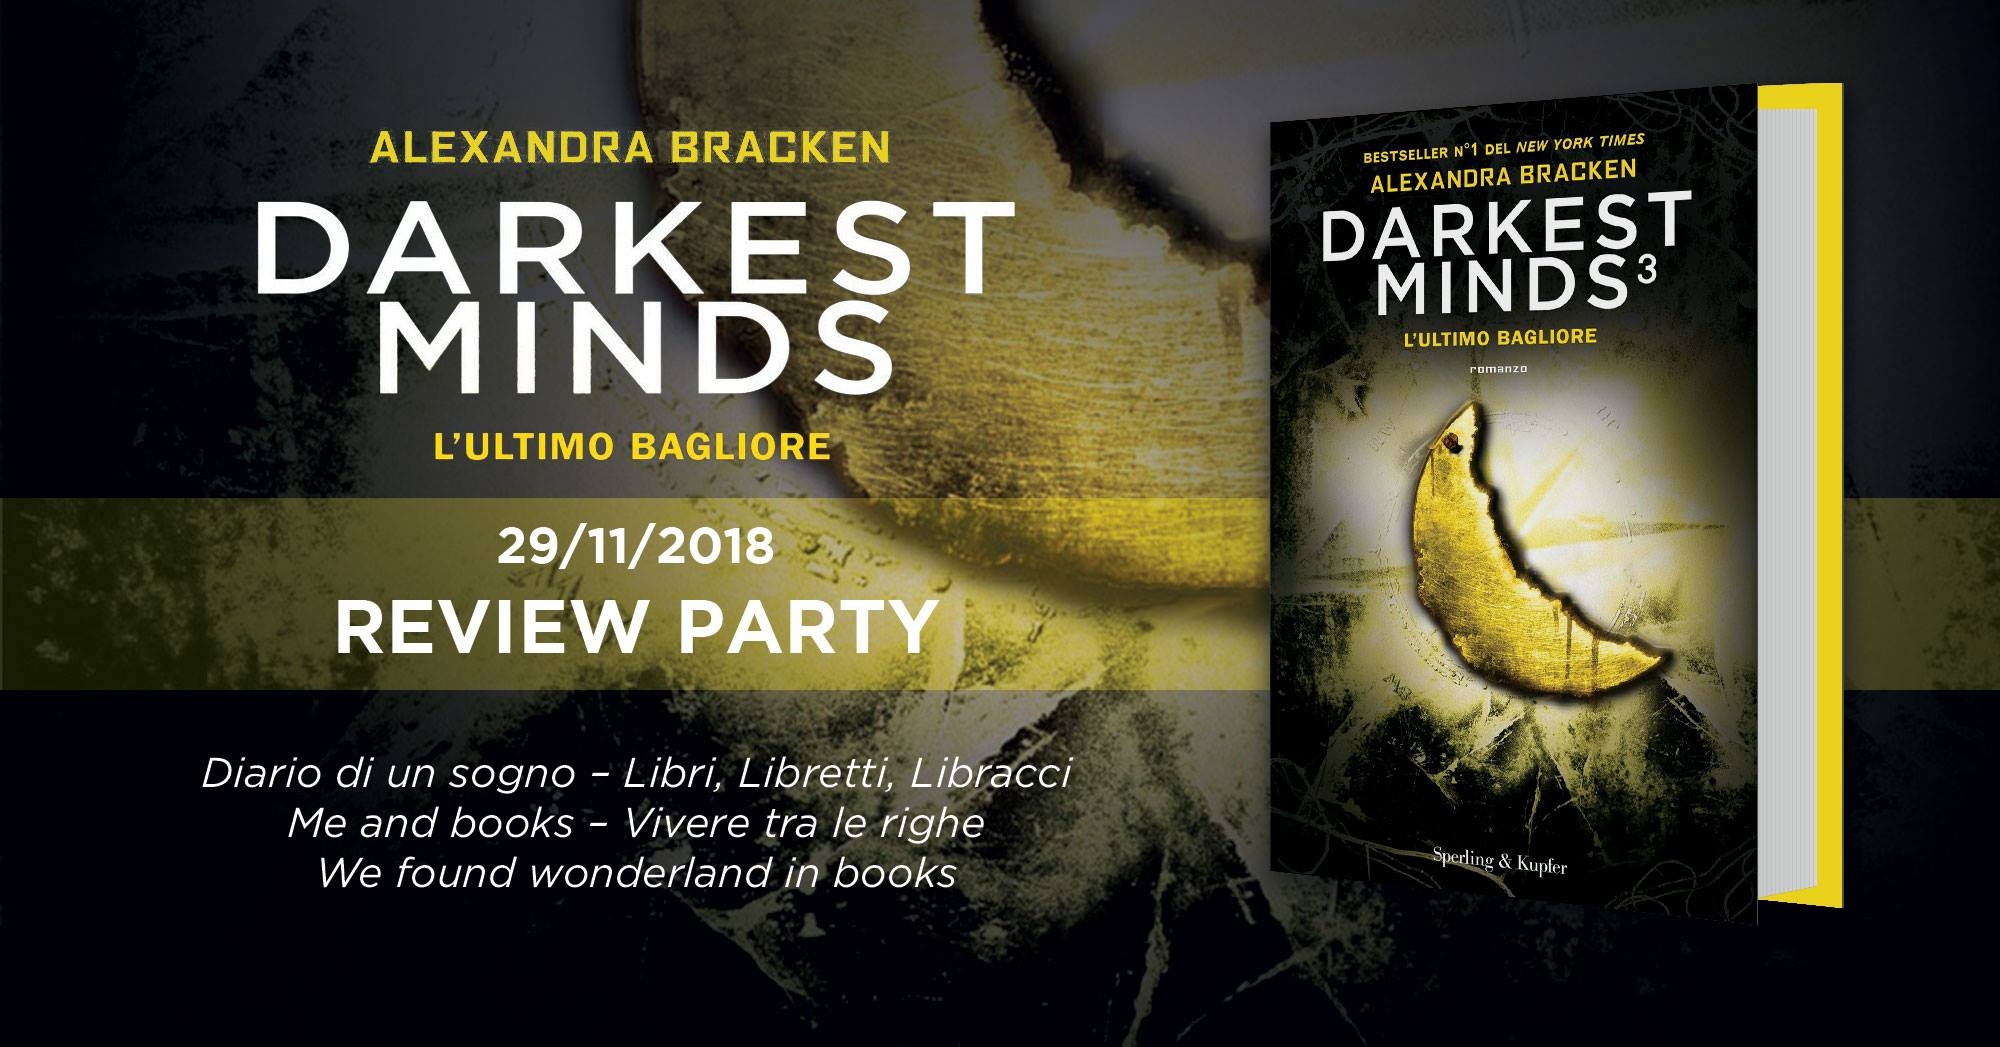 Review Party - Darkest Minds 3: l'ultimo bagliore di Alexandra Bracken